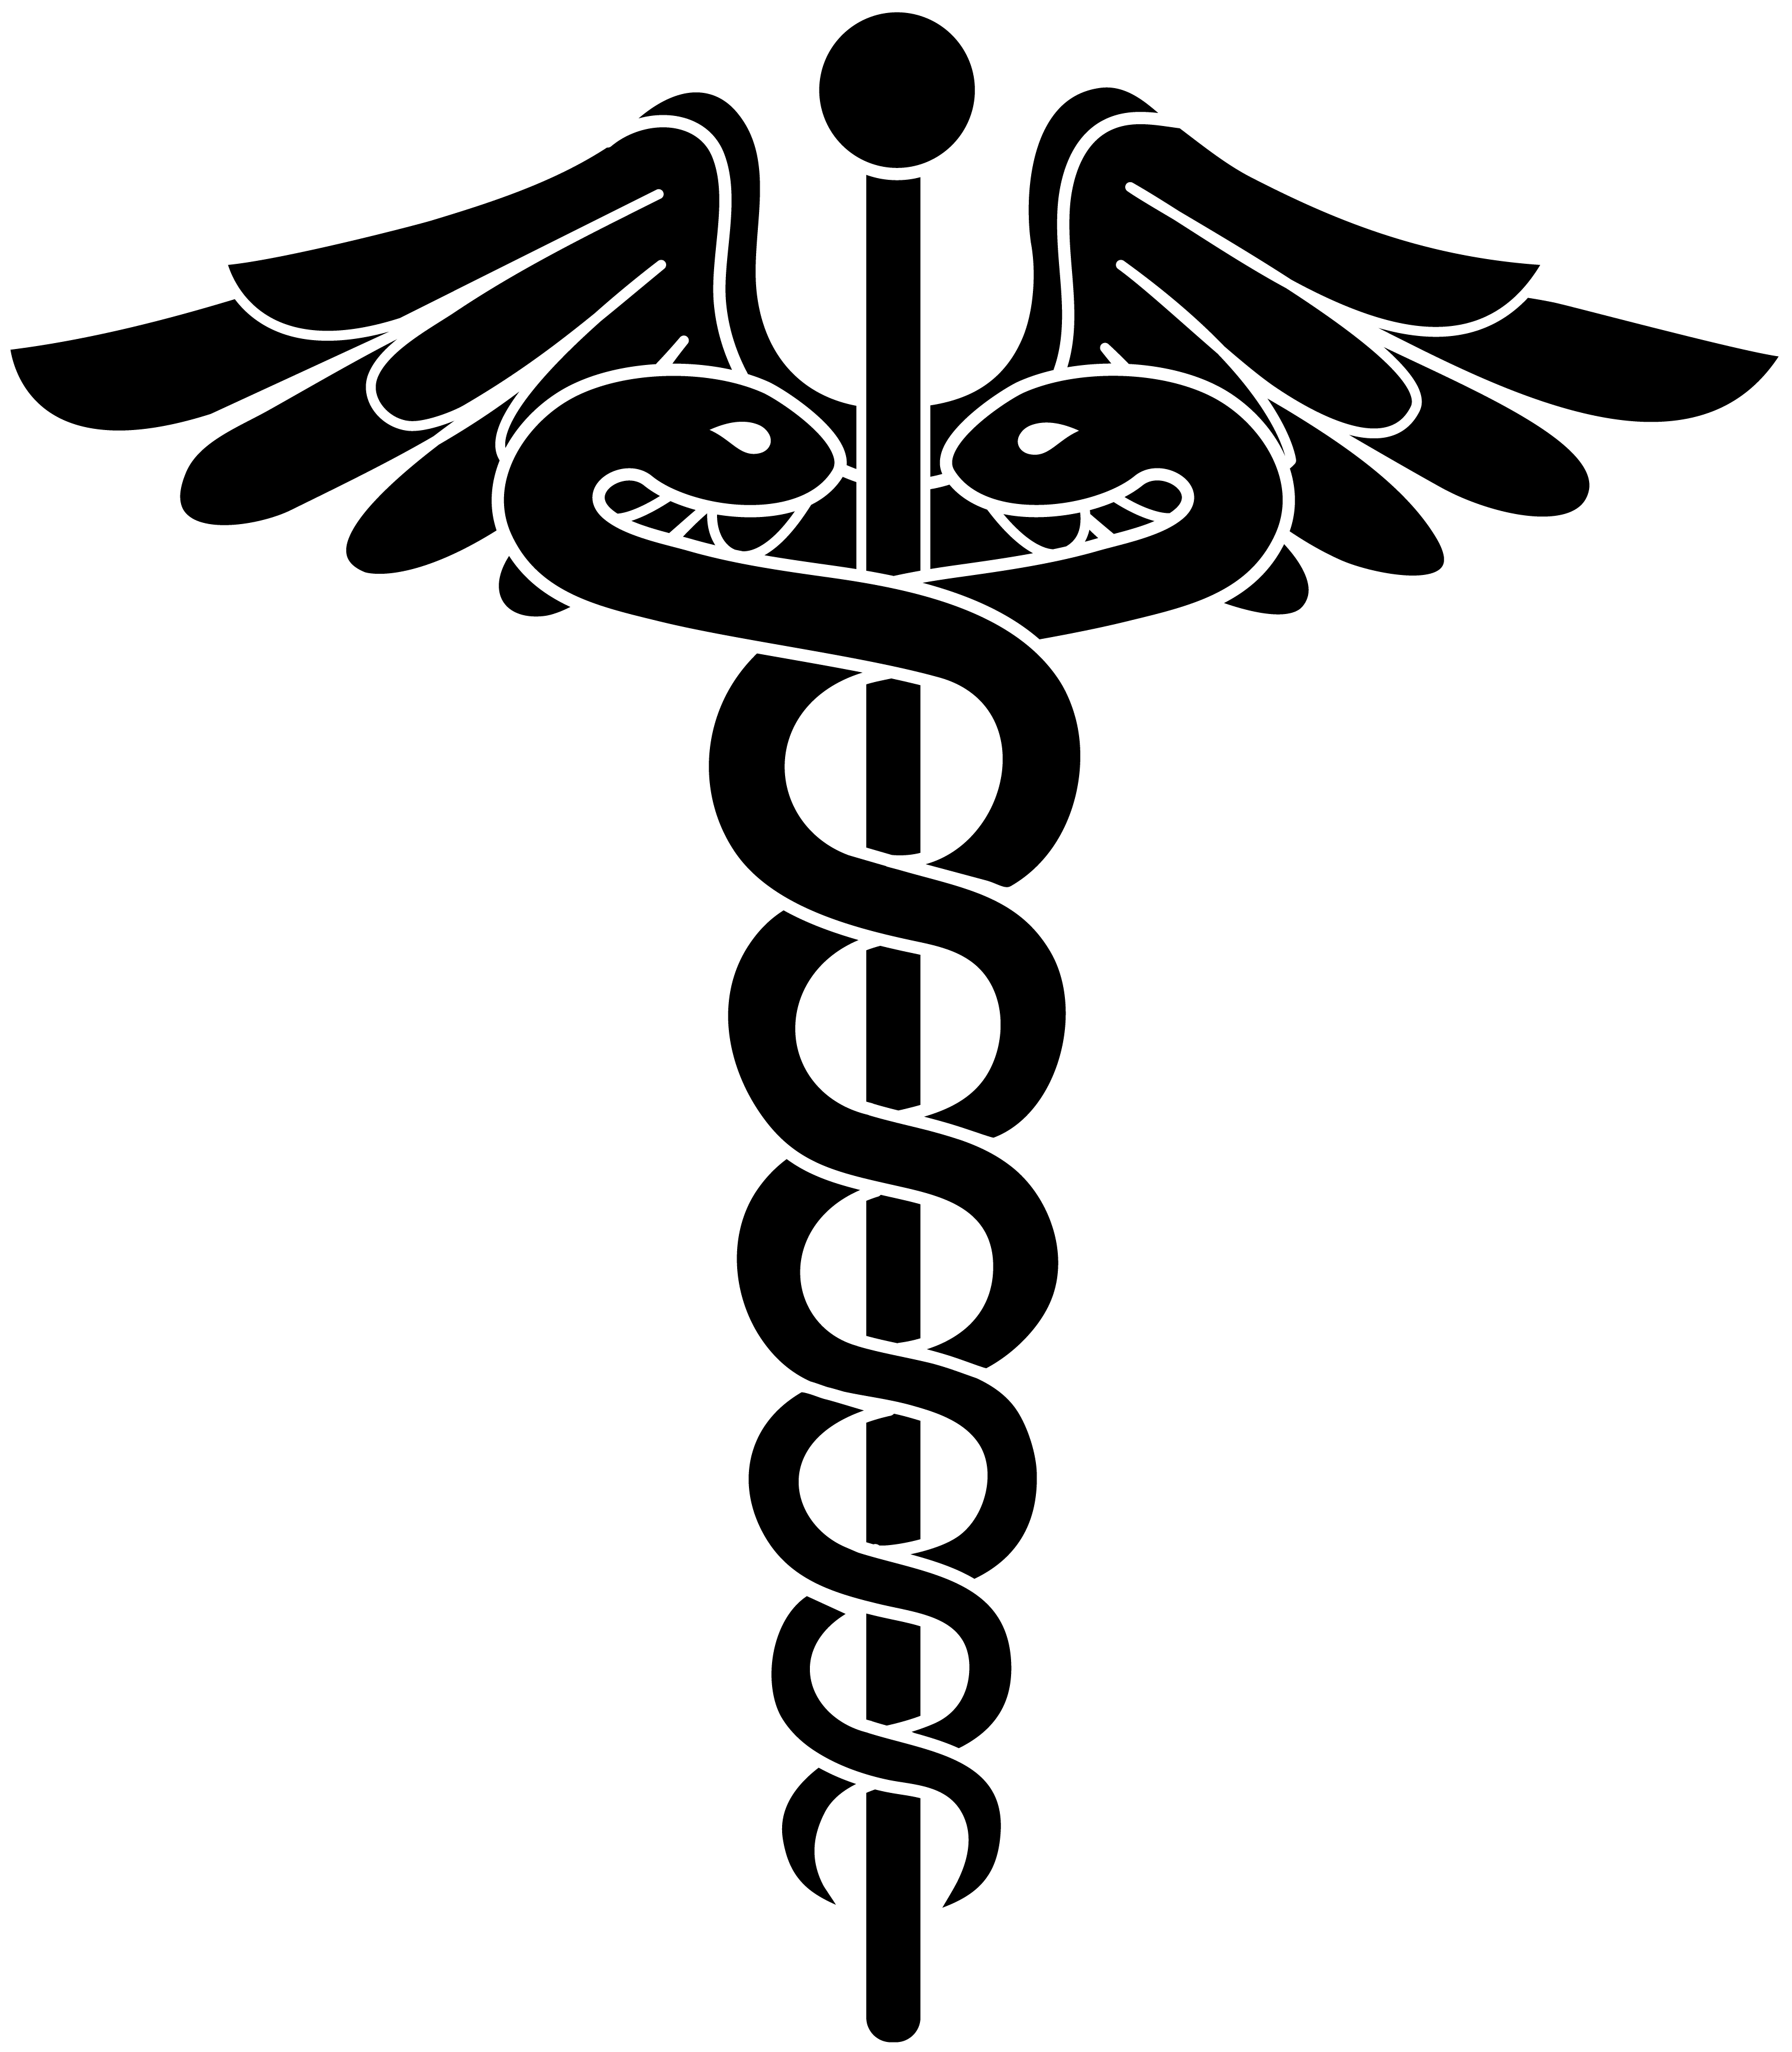 Doctors Logo Images   Physicians Logos Wallpaper